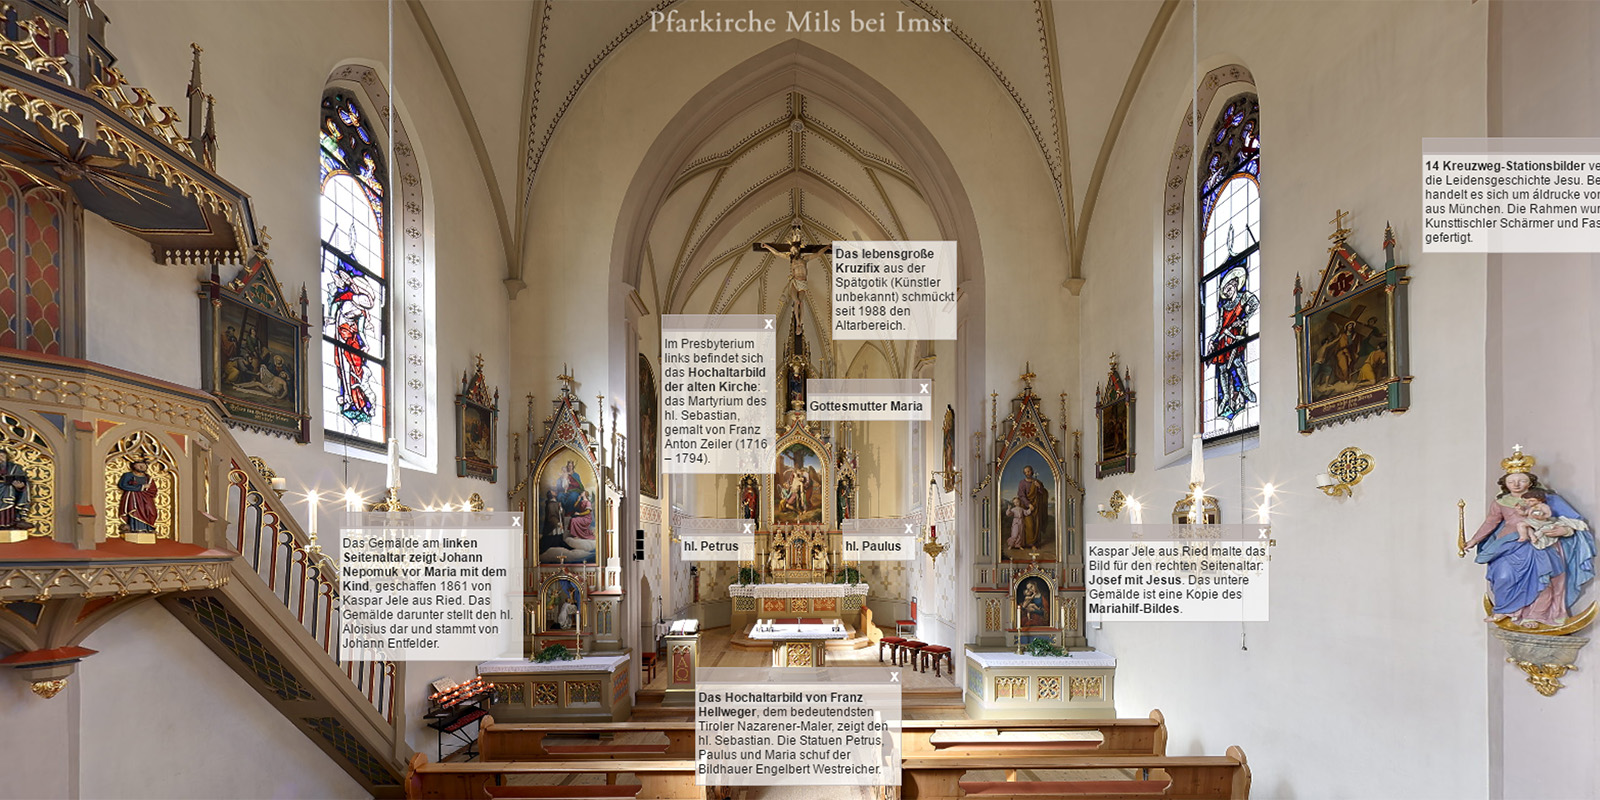 Church Panorama, Mils bei Imst